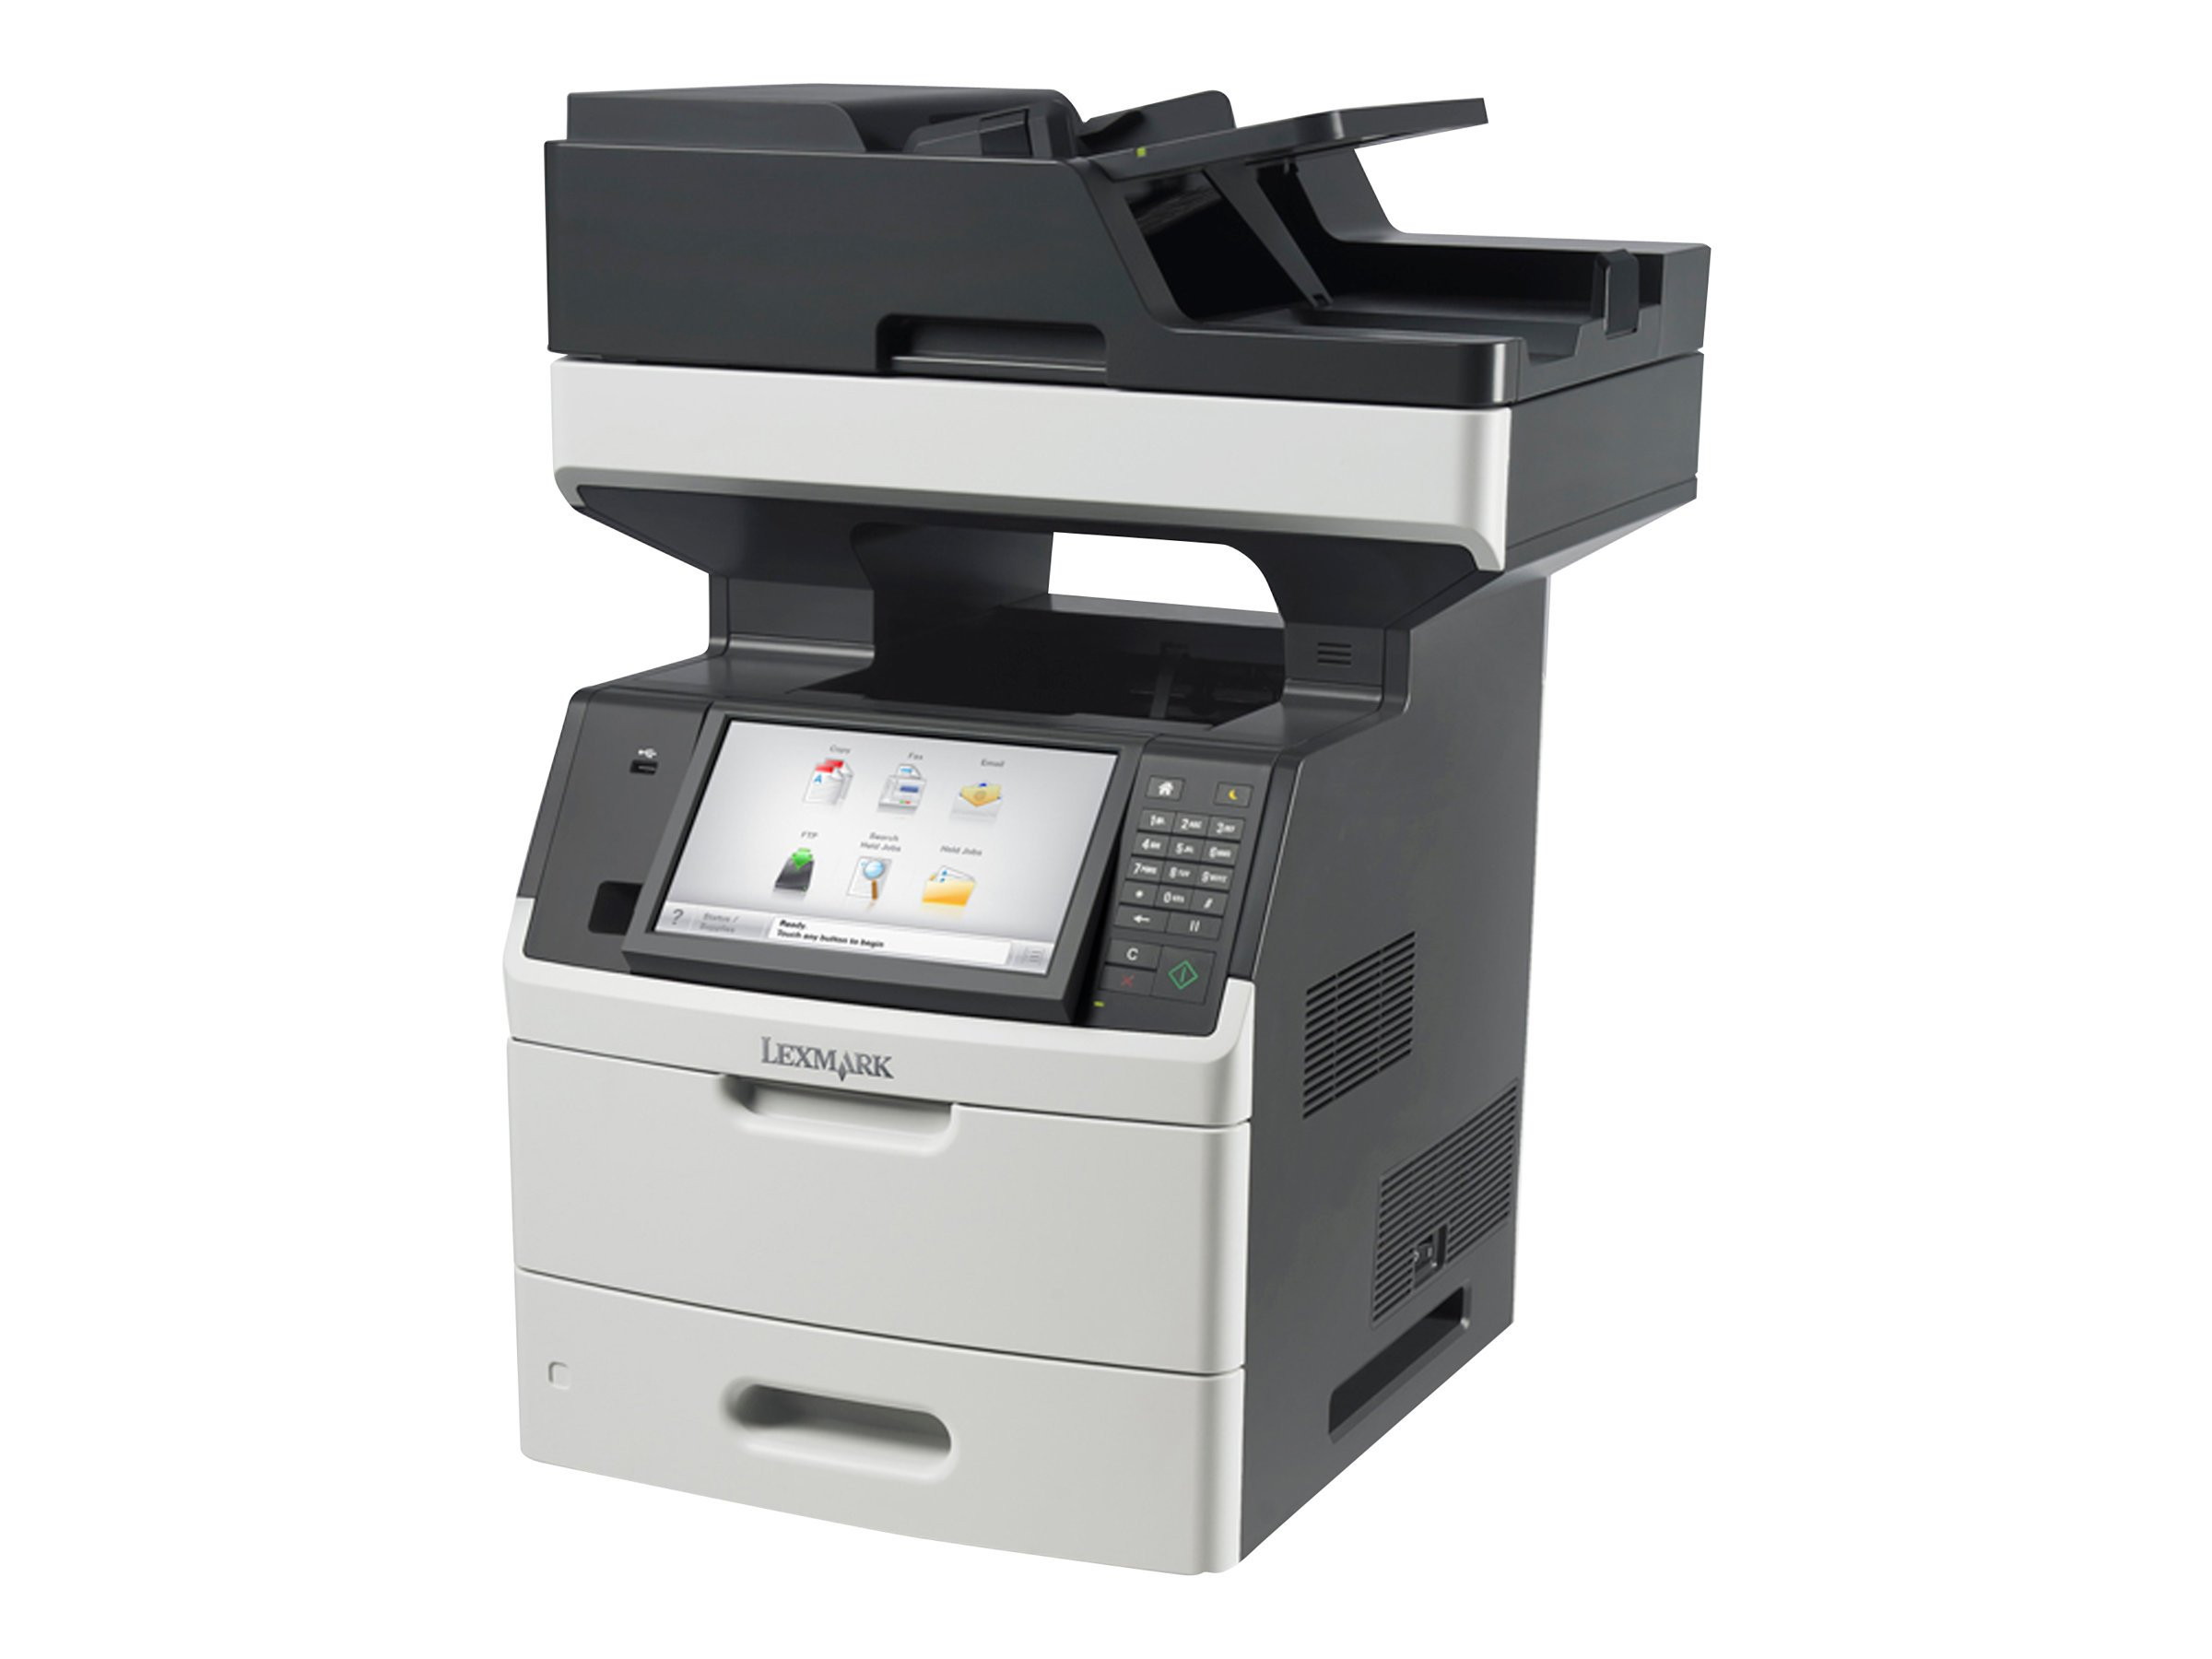 Lexmark MX46dhe - B/W Multifunction ( fax / copier / printer / scanner )